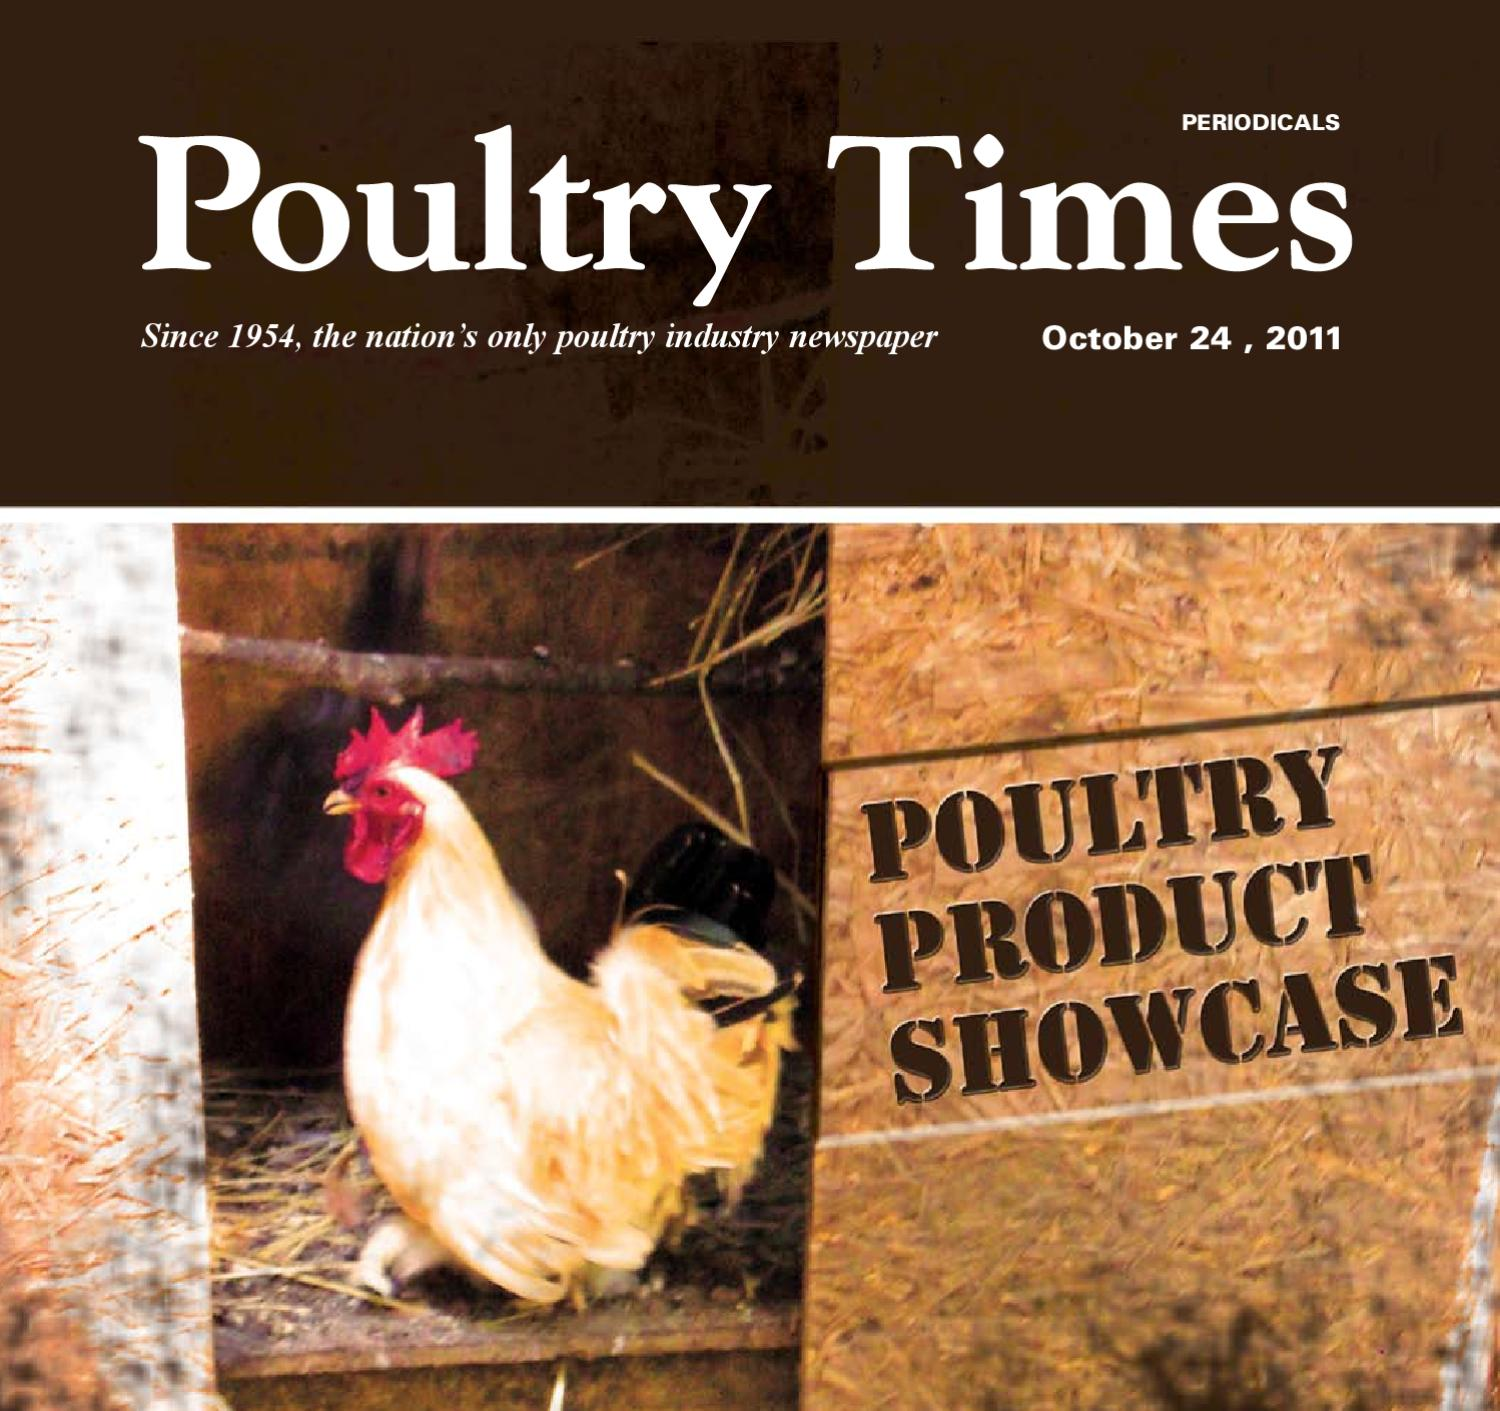 Colormaster albertville al - Poultry Times October 24 Issue